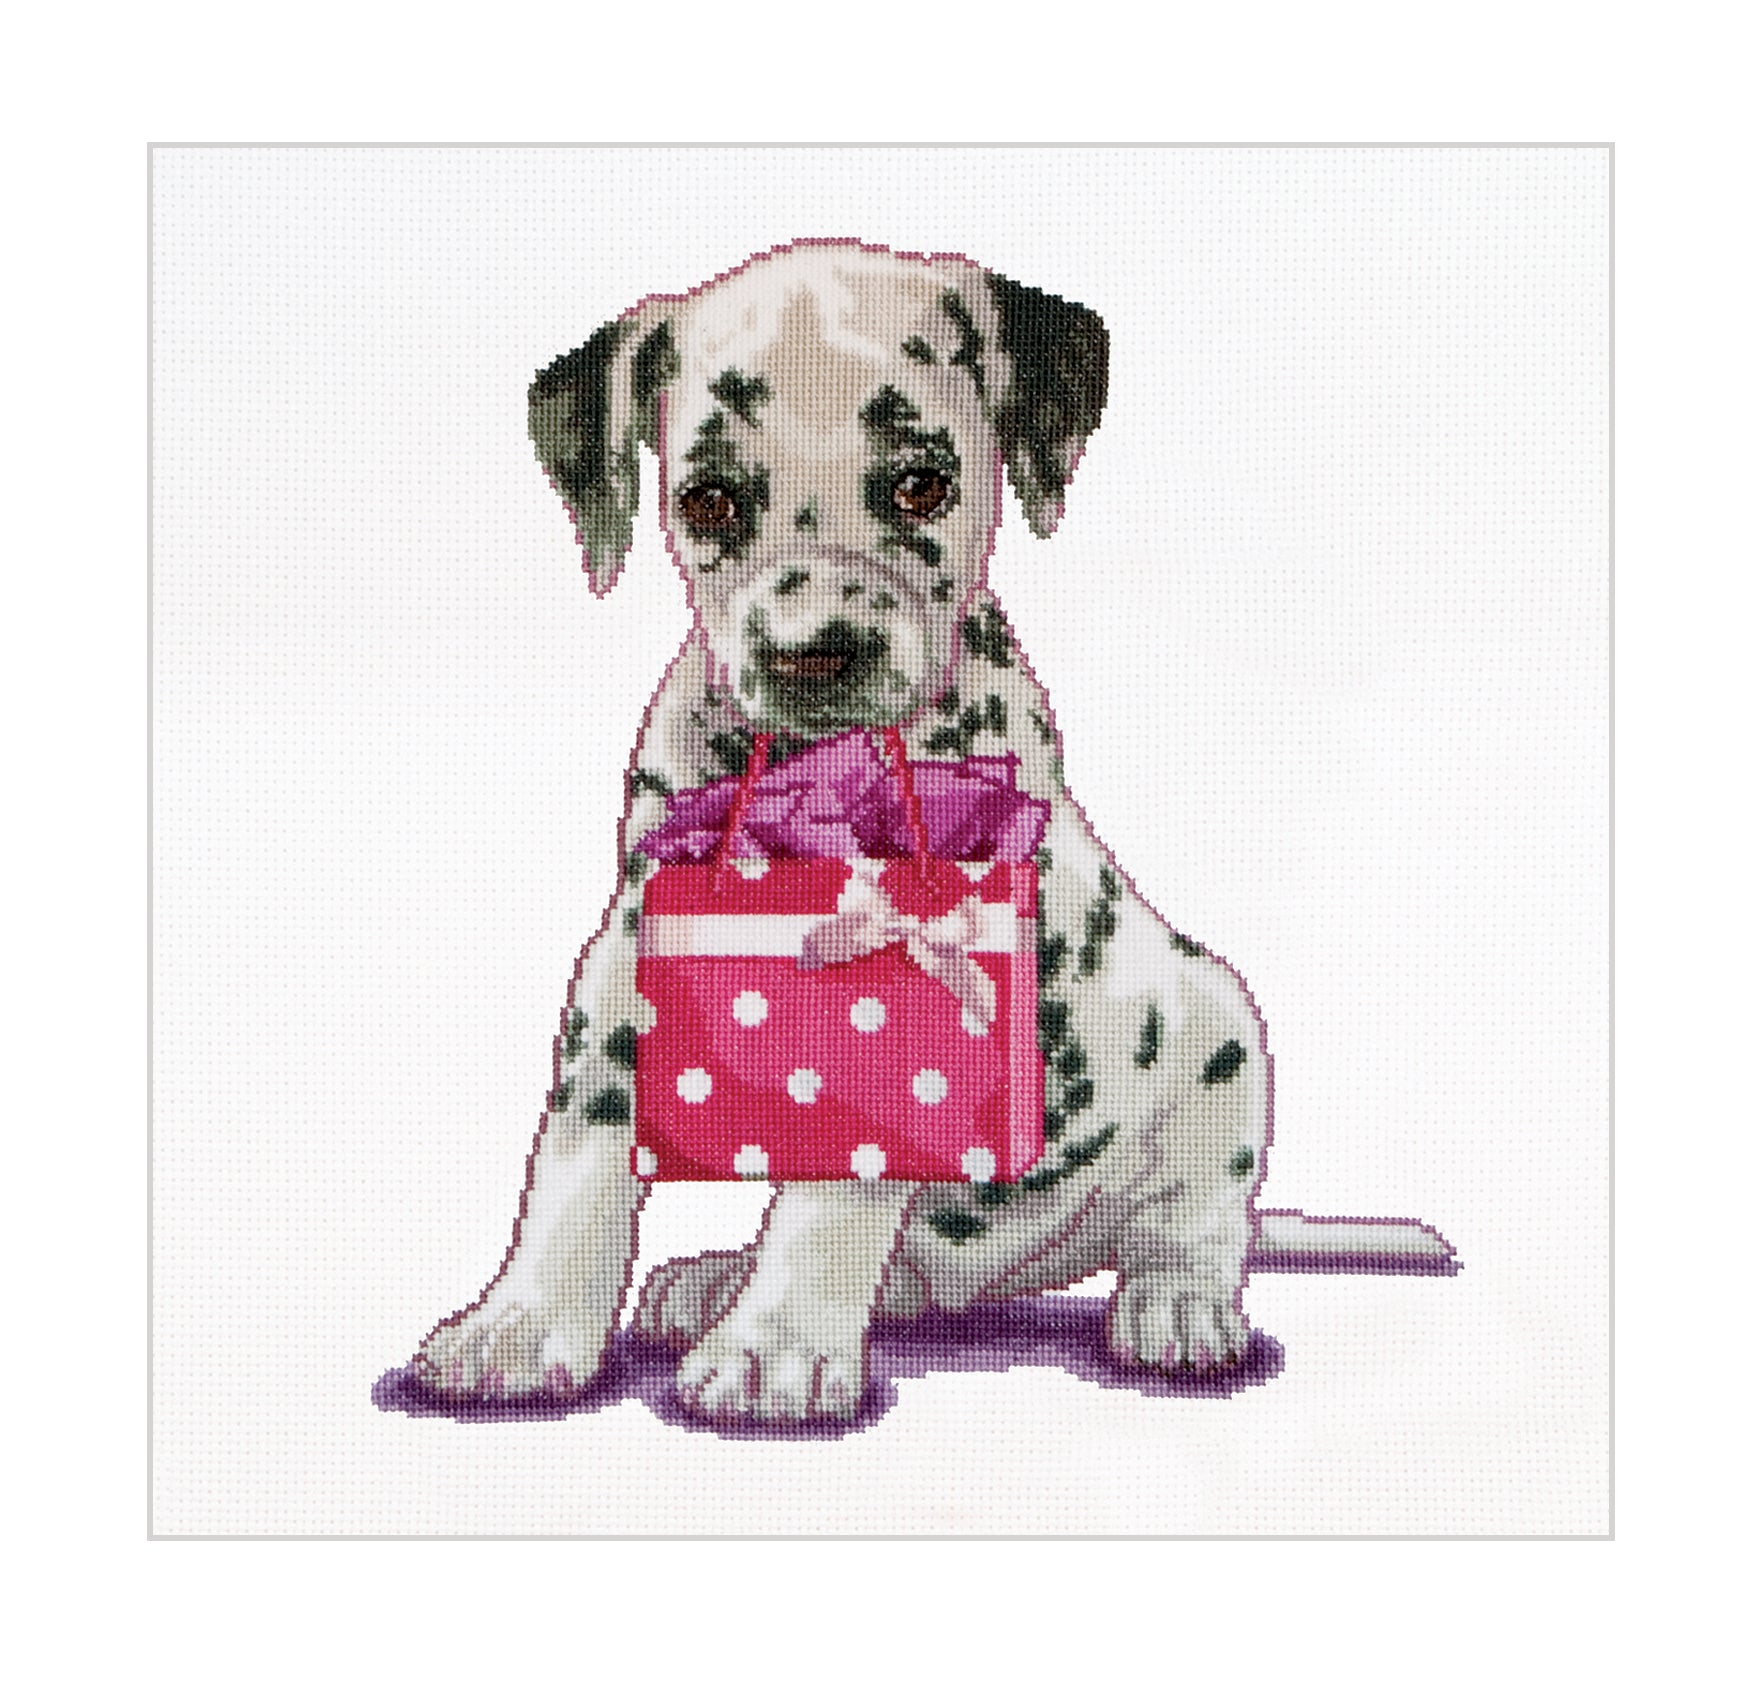 Puppy Went Shopping - Cross-Stitch Kit